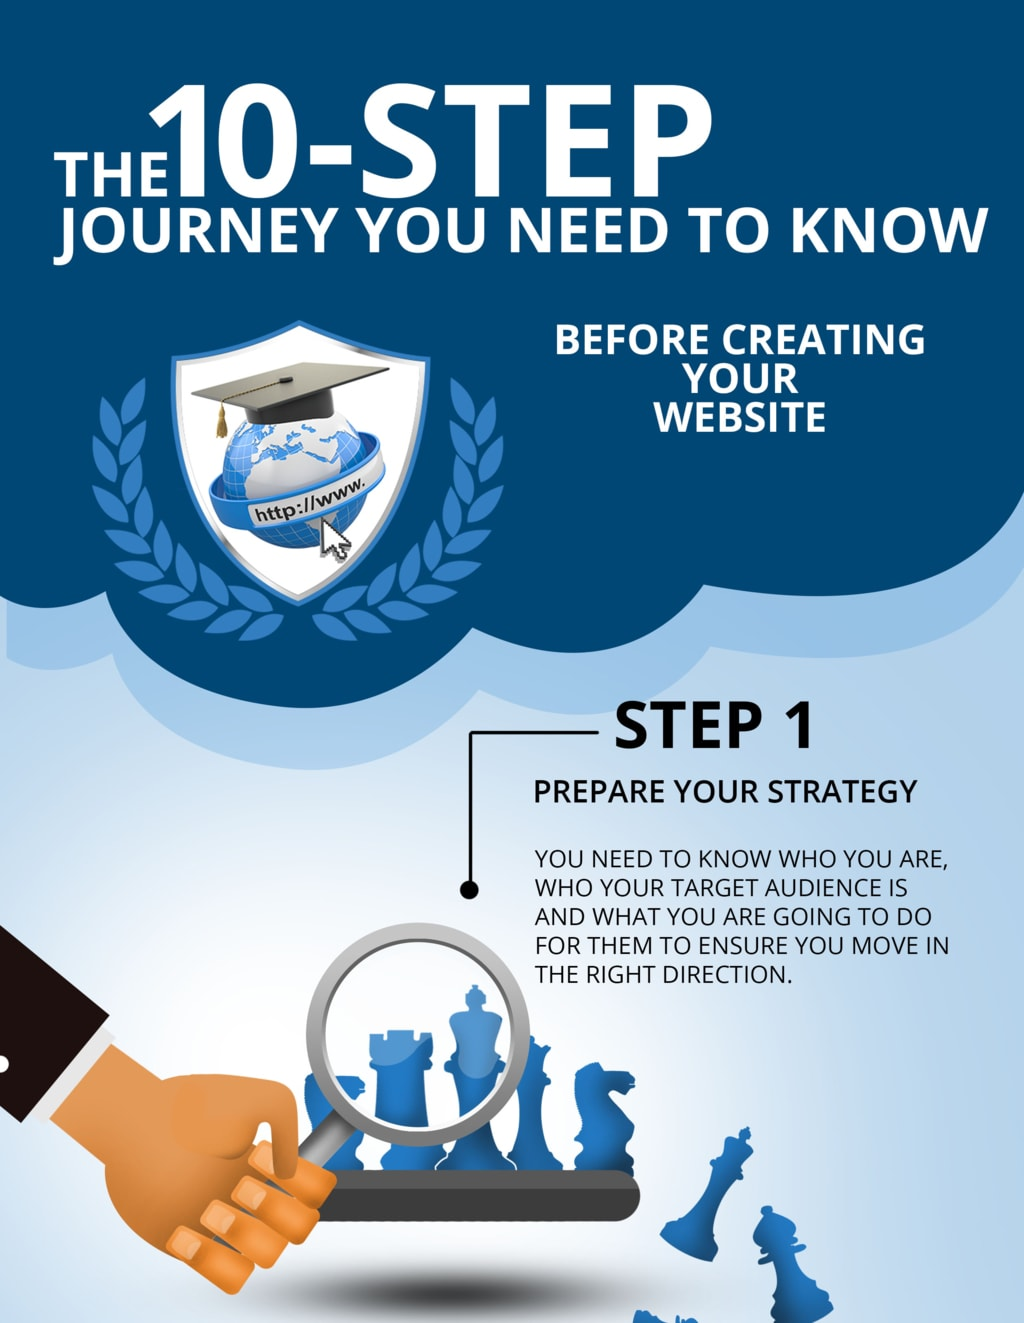 Ten step Journey for website design via MGL Infographic